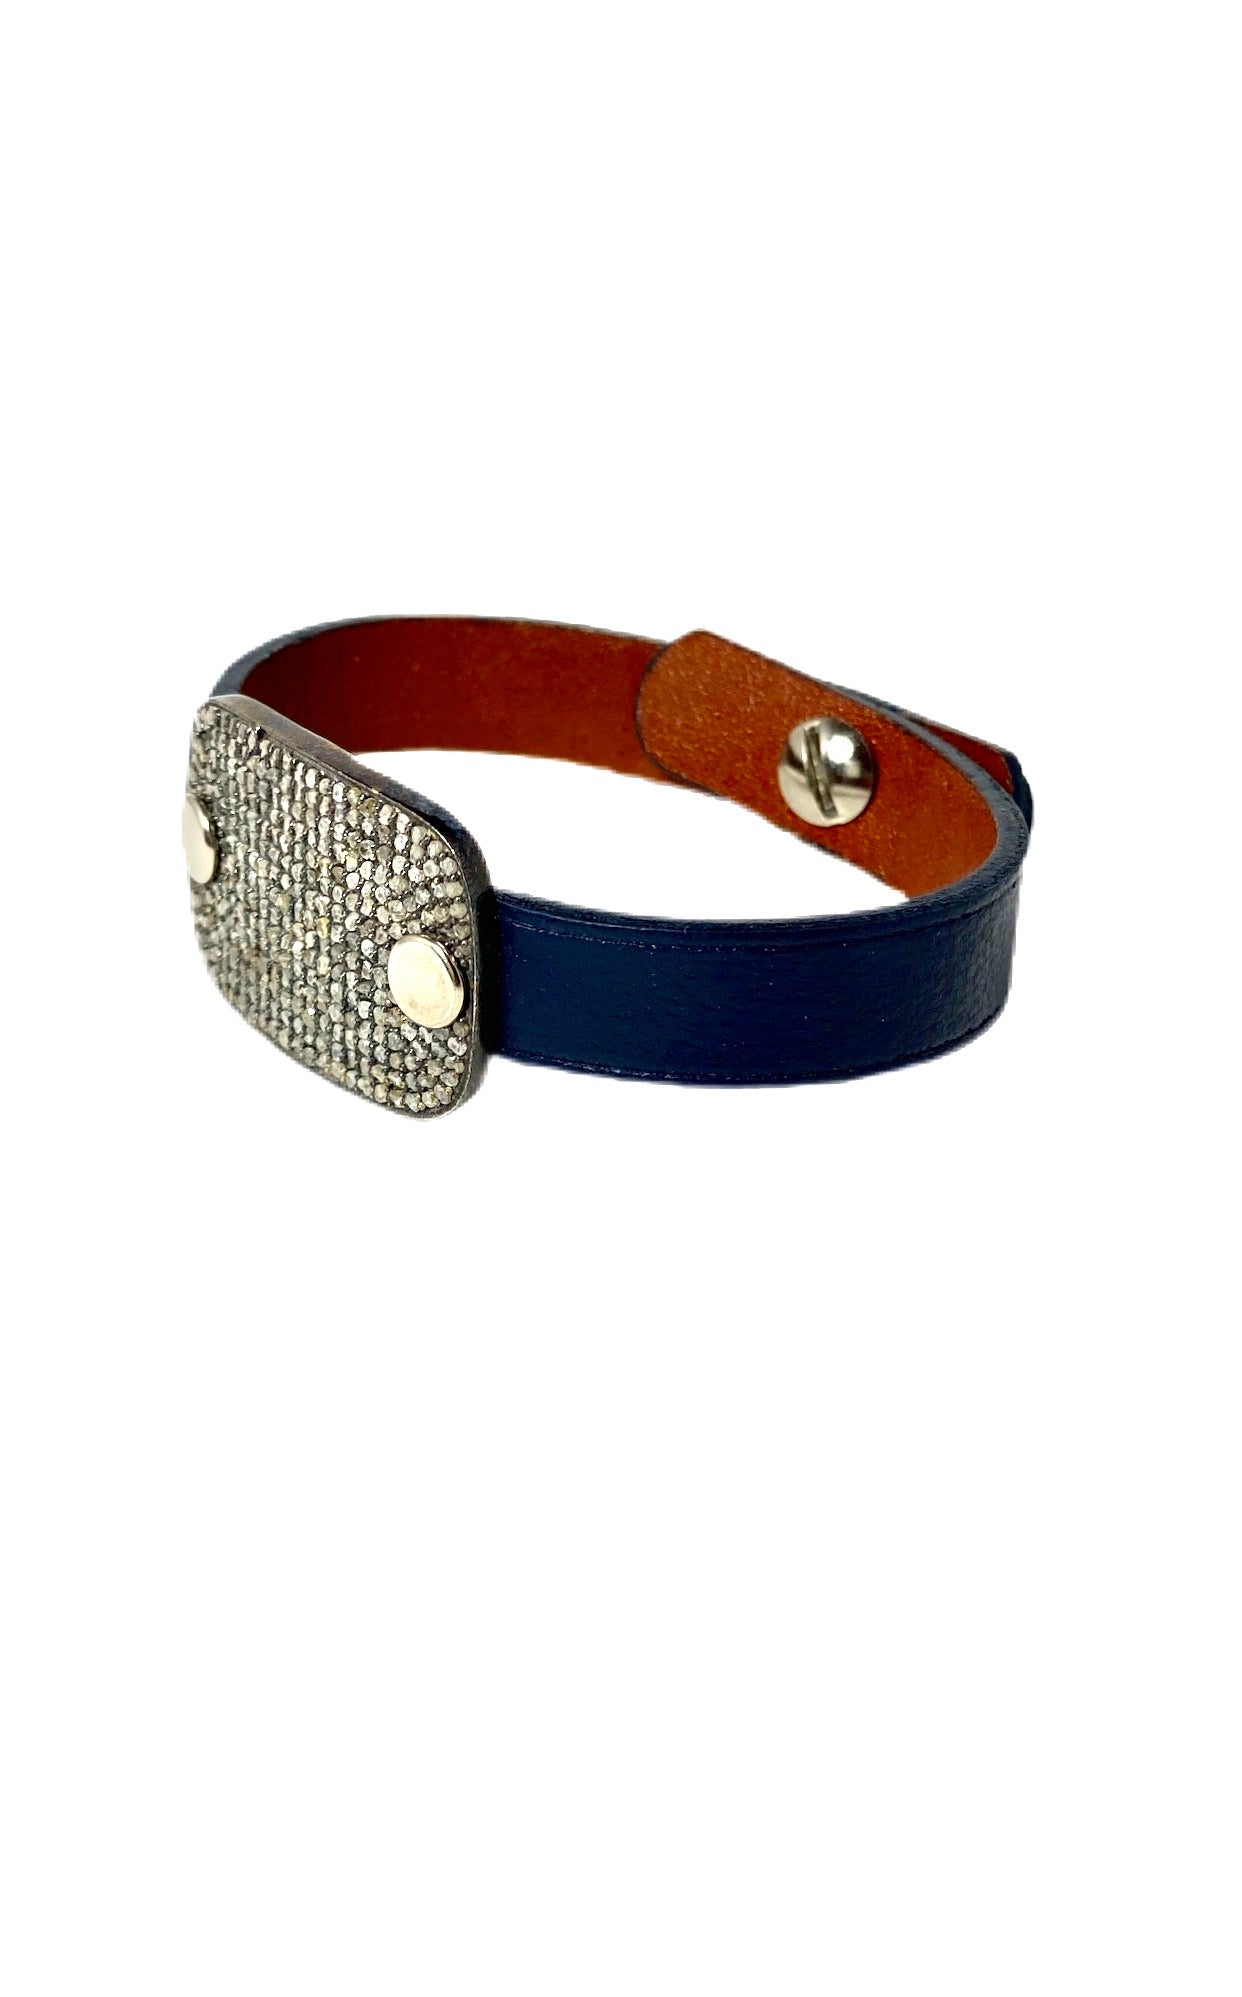 S.Row Designs Pave Diamond Leather Bracelet